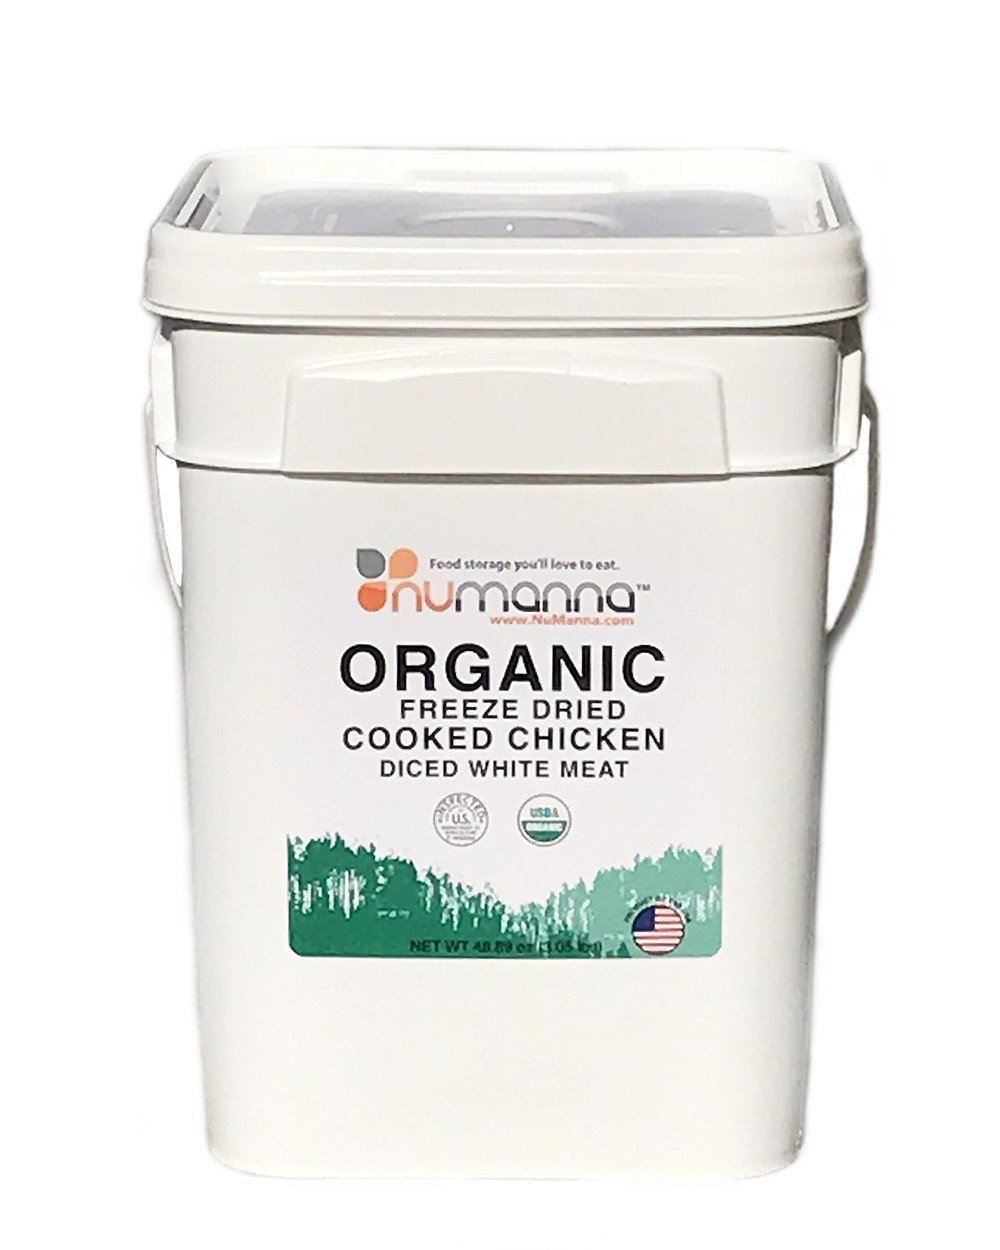 NuManna Organic Freeze Dried Cooked Chicken Diced White Meat - Bucket of 66 Servings, Emergency Survival Food Storage Kit, Separate Rations, in a Bucket, 10 Plus Year Shelf Life, GMO-Free